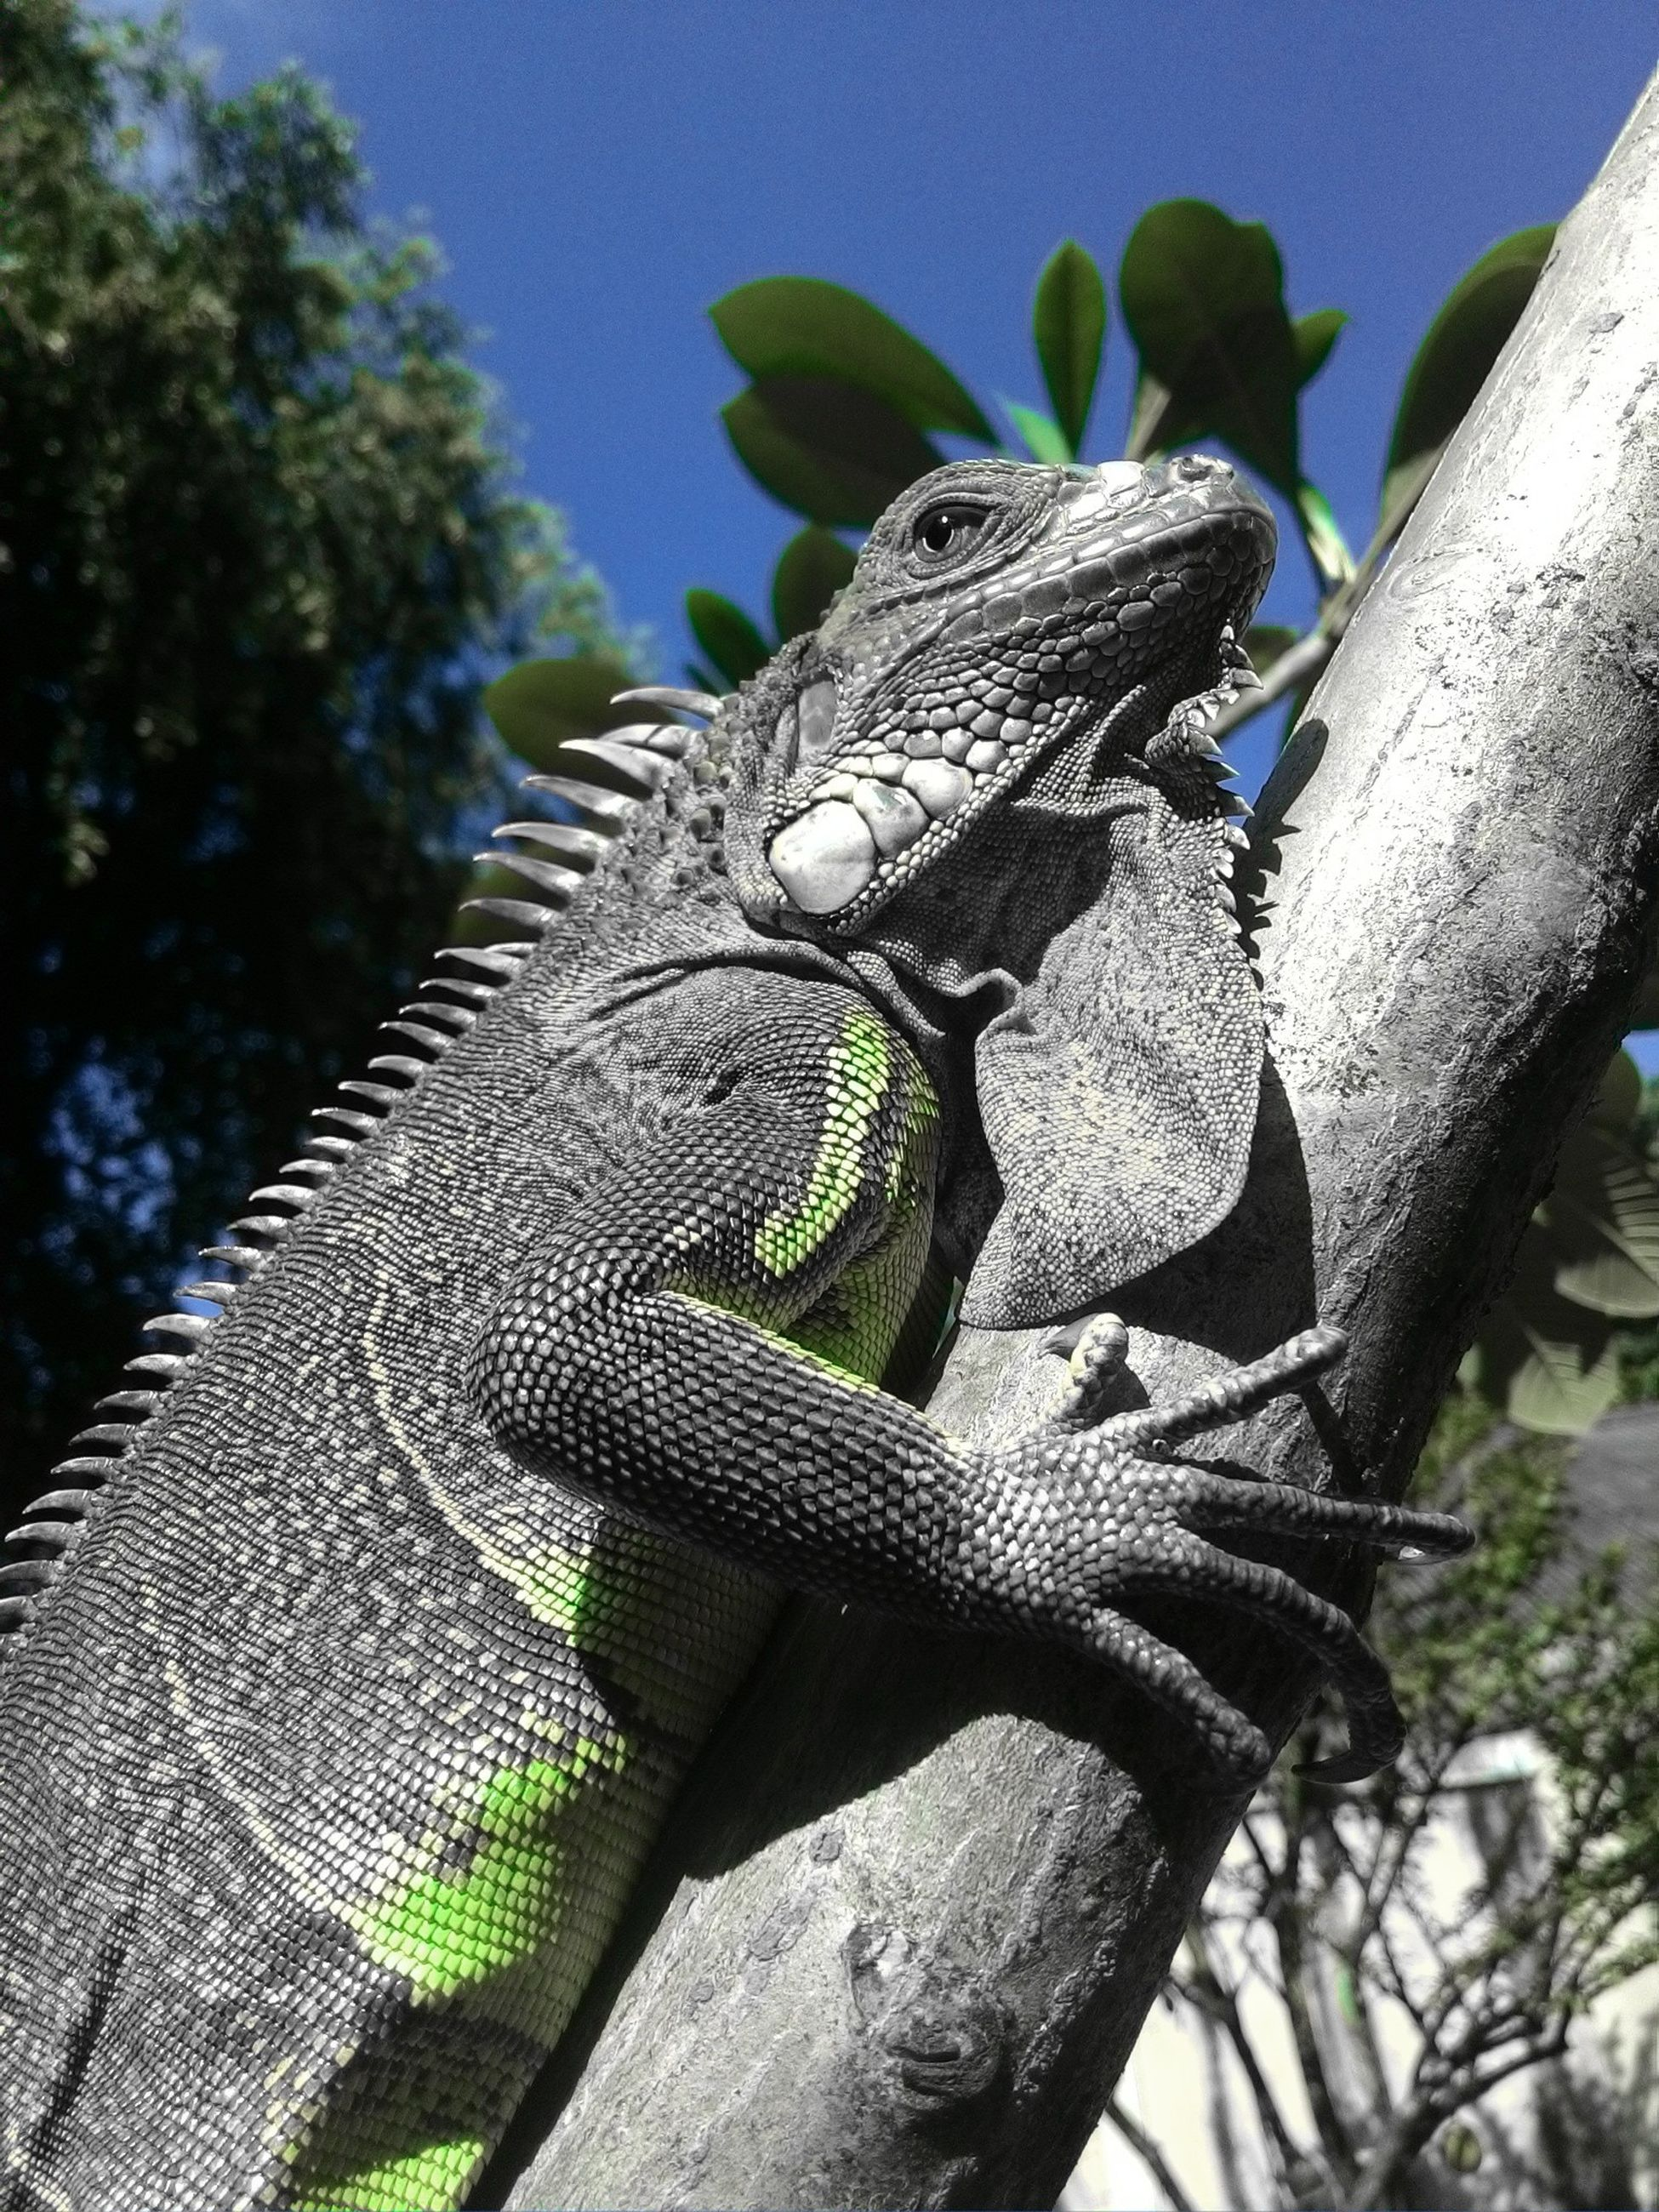 animal themes, reptile, animal, animal wildlife, vertebrate, lizard, animals in the wild, one animal, plant, tree, nature, no people, iguana, day, focus on foreground, animal body part, close-up, branch, outdoors, low angle view, animal head, animal scale